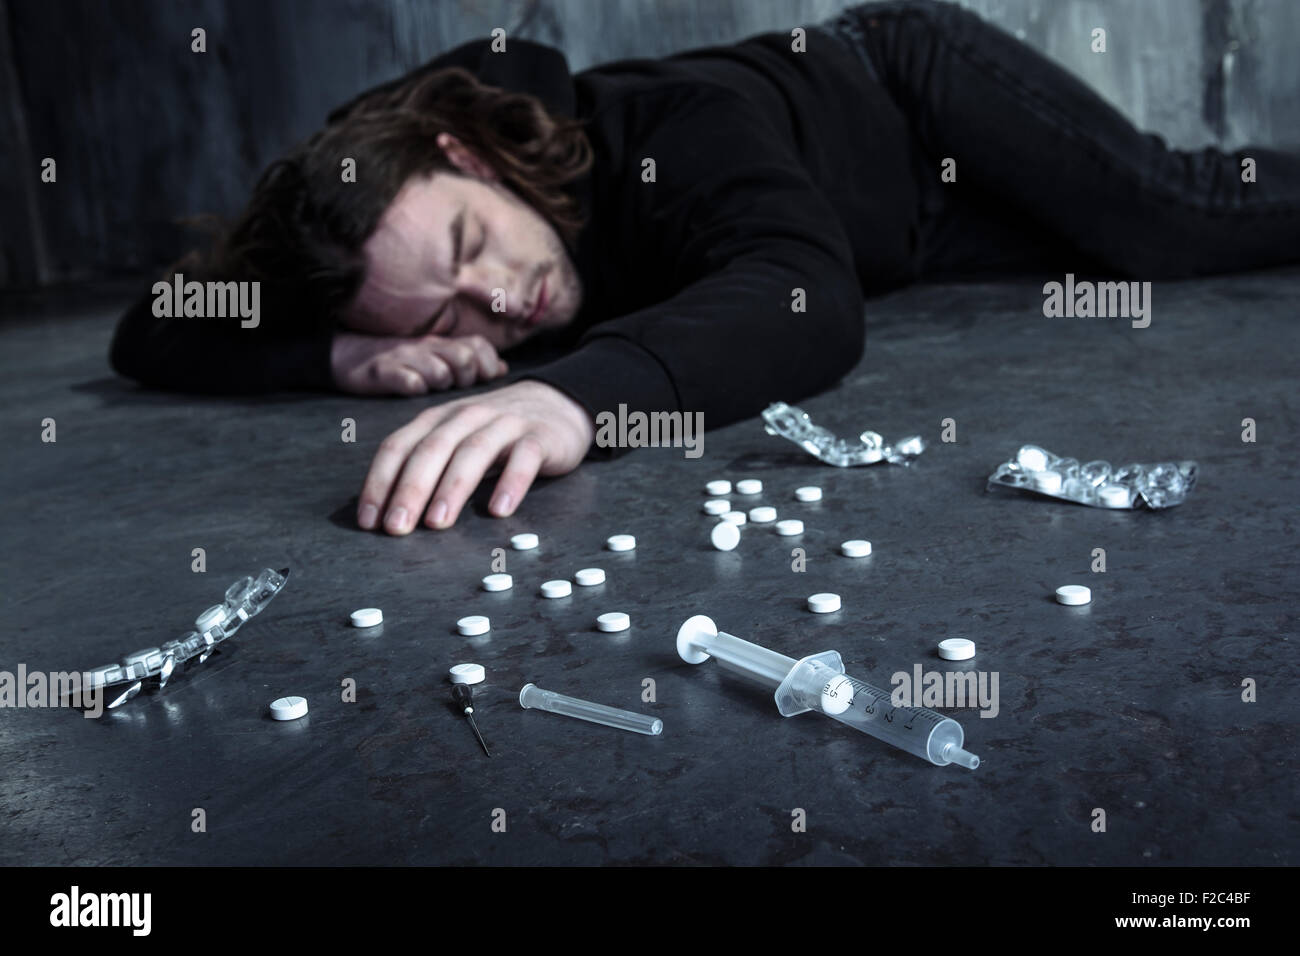 Concept for drug addiction and despair Stock Photo: 87548035